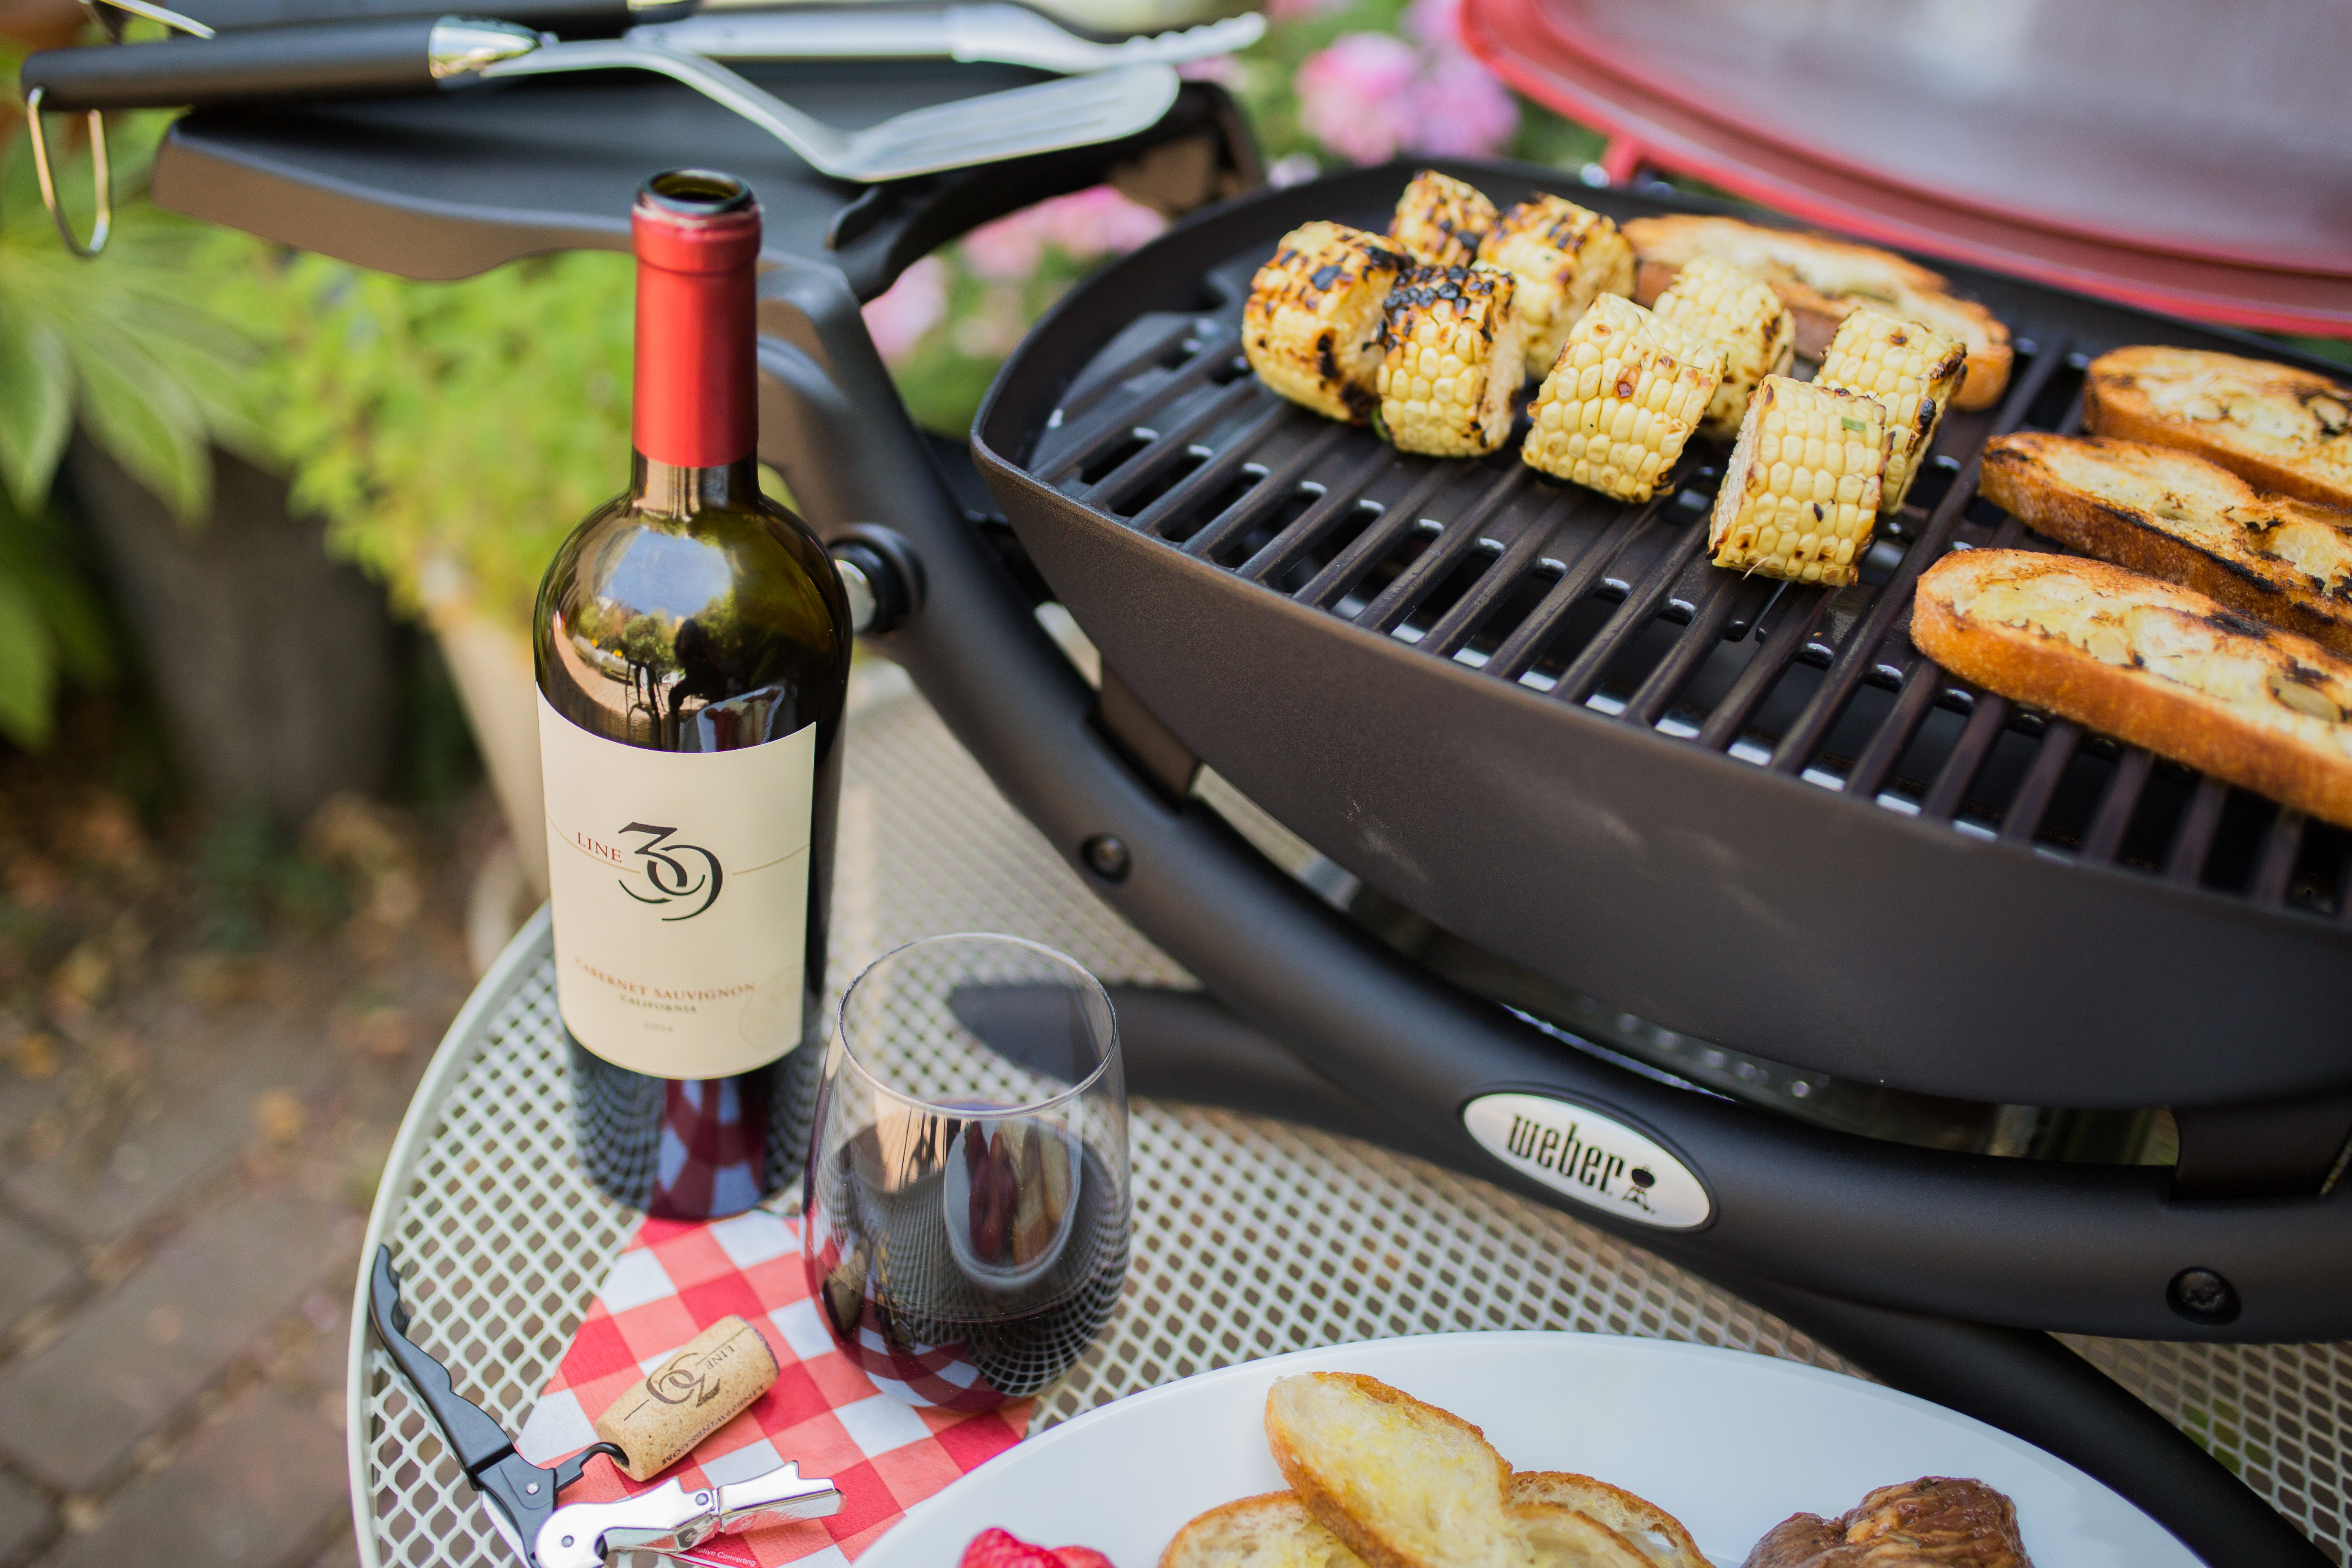 Line 39 wine and Weber grill